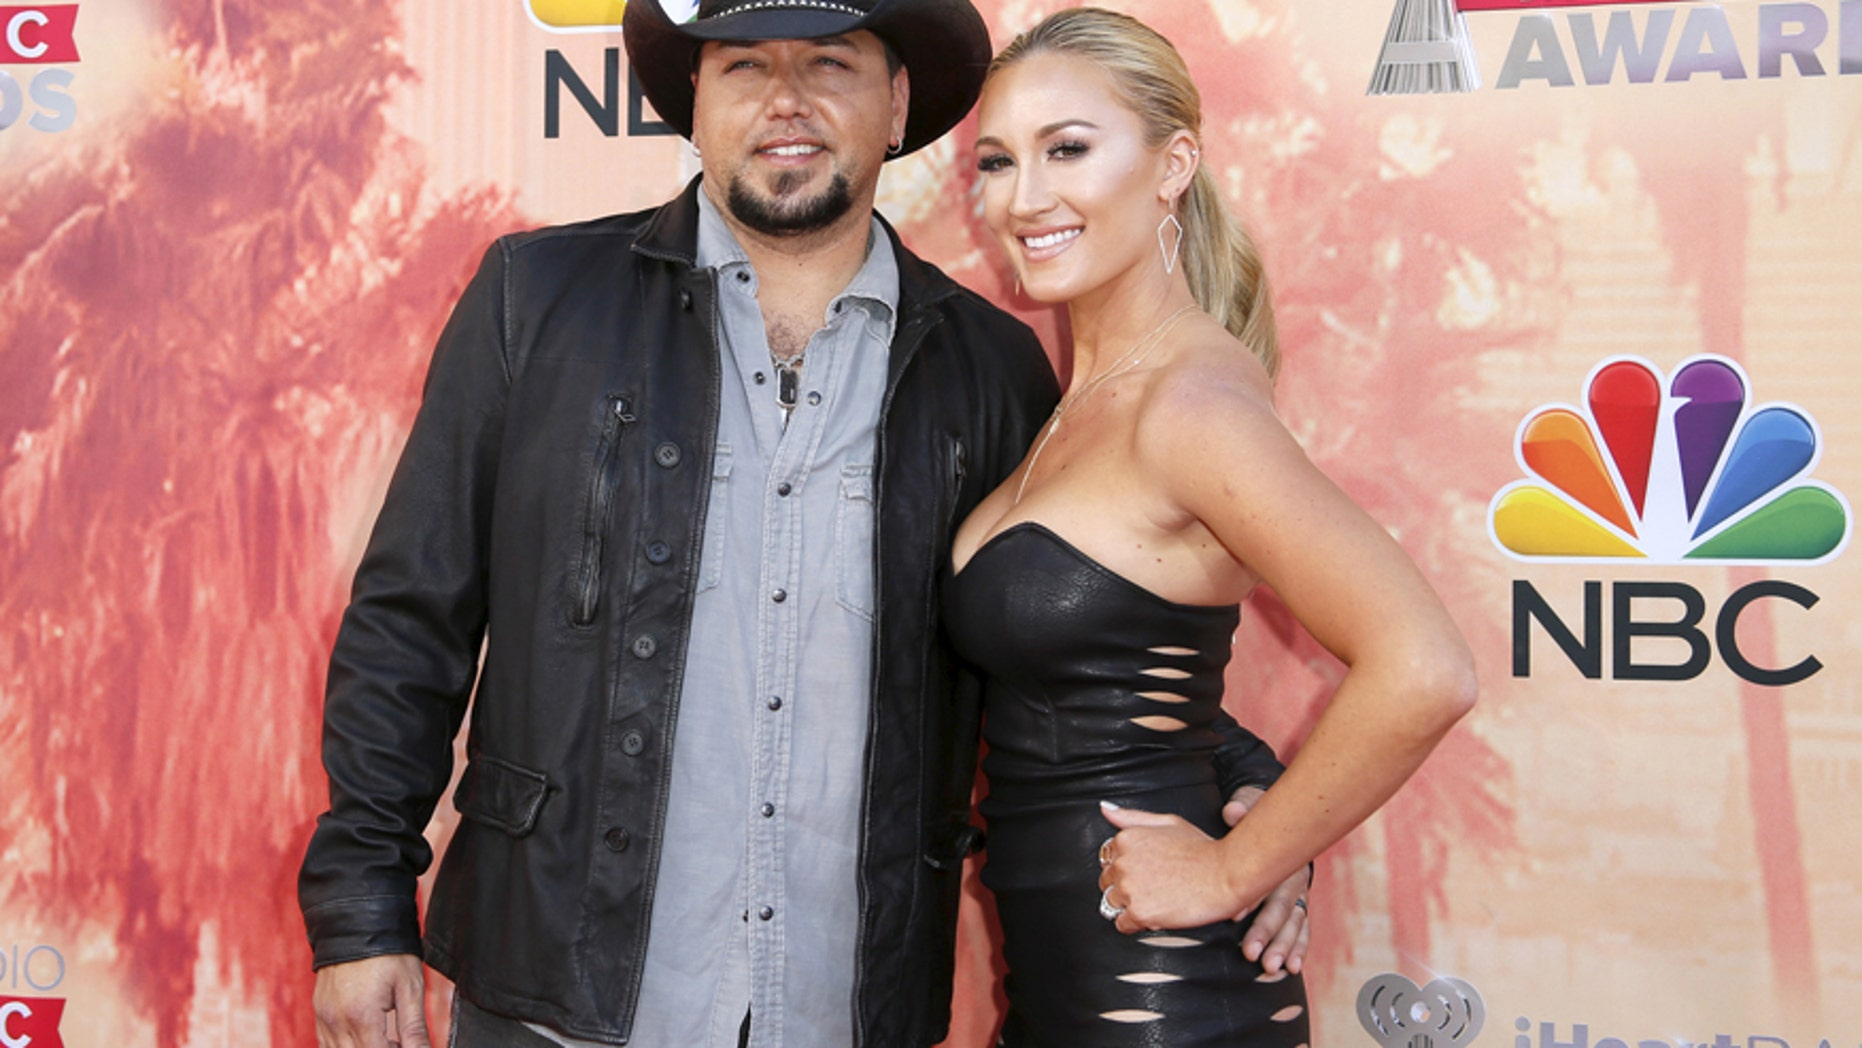 Singer Jason Aldean (L) and wife Brittany Kerr pose at the 2015 iHeartRadio Music Awards in Los Angeles, California, March 29, 2015.